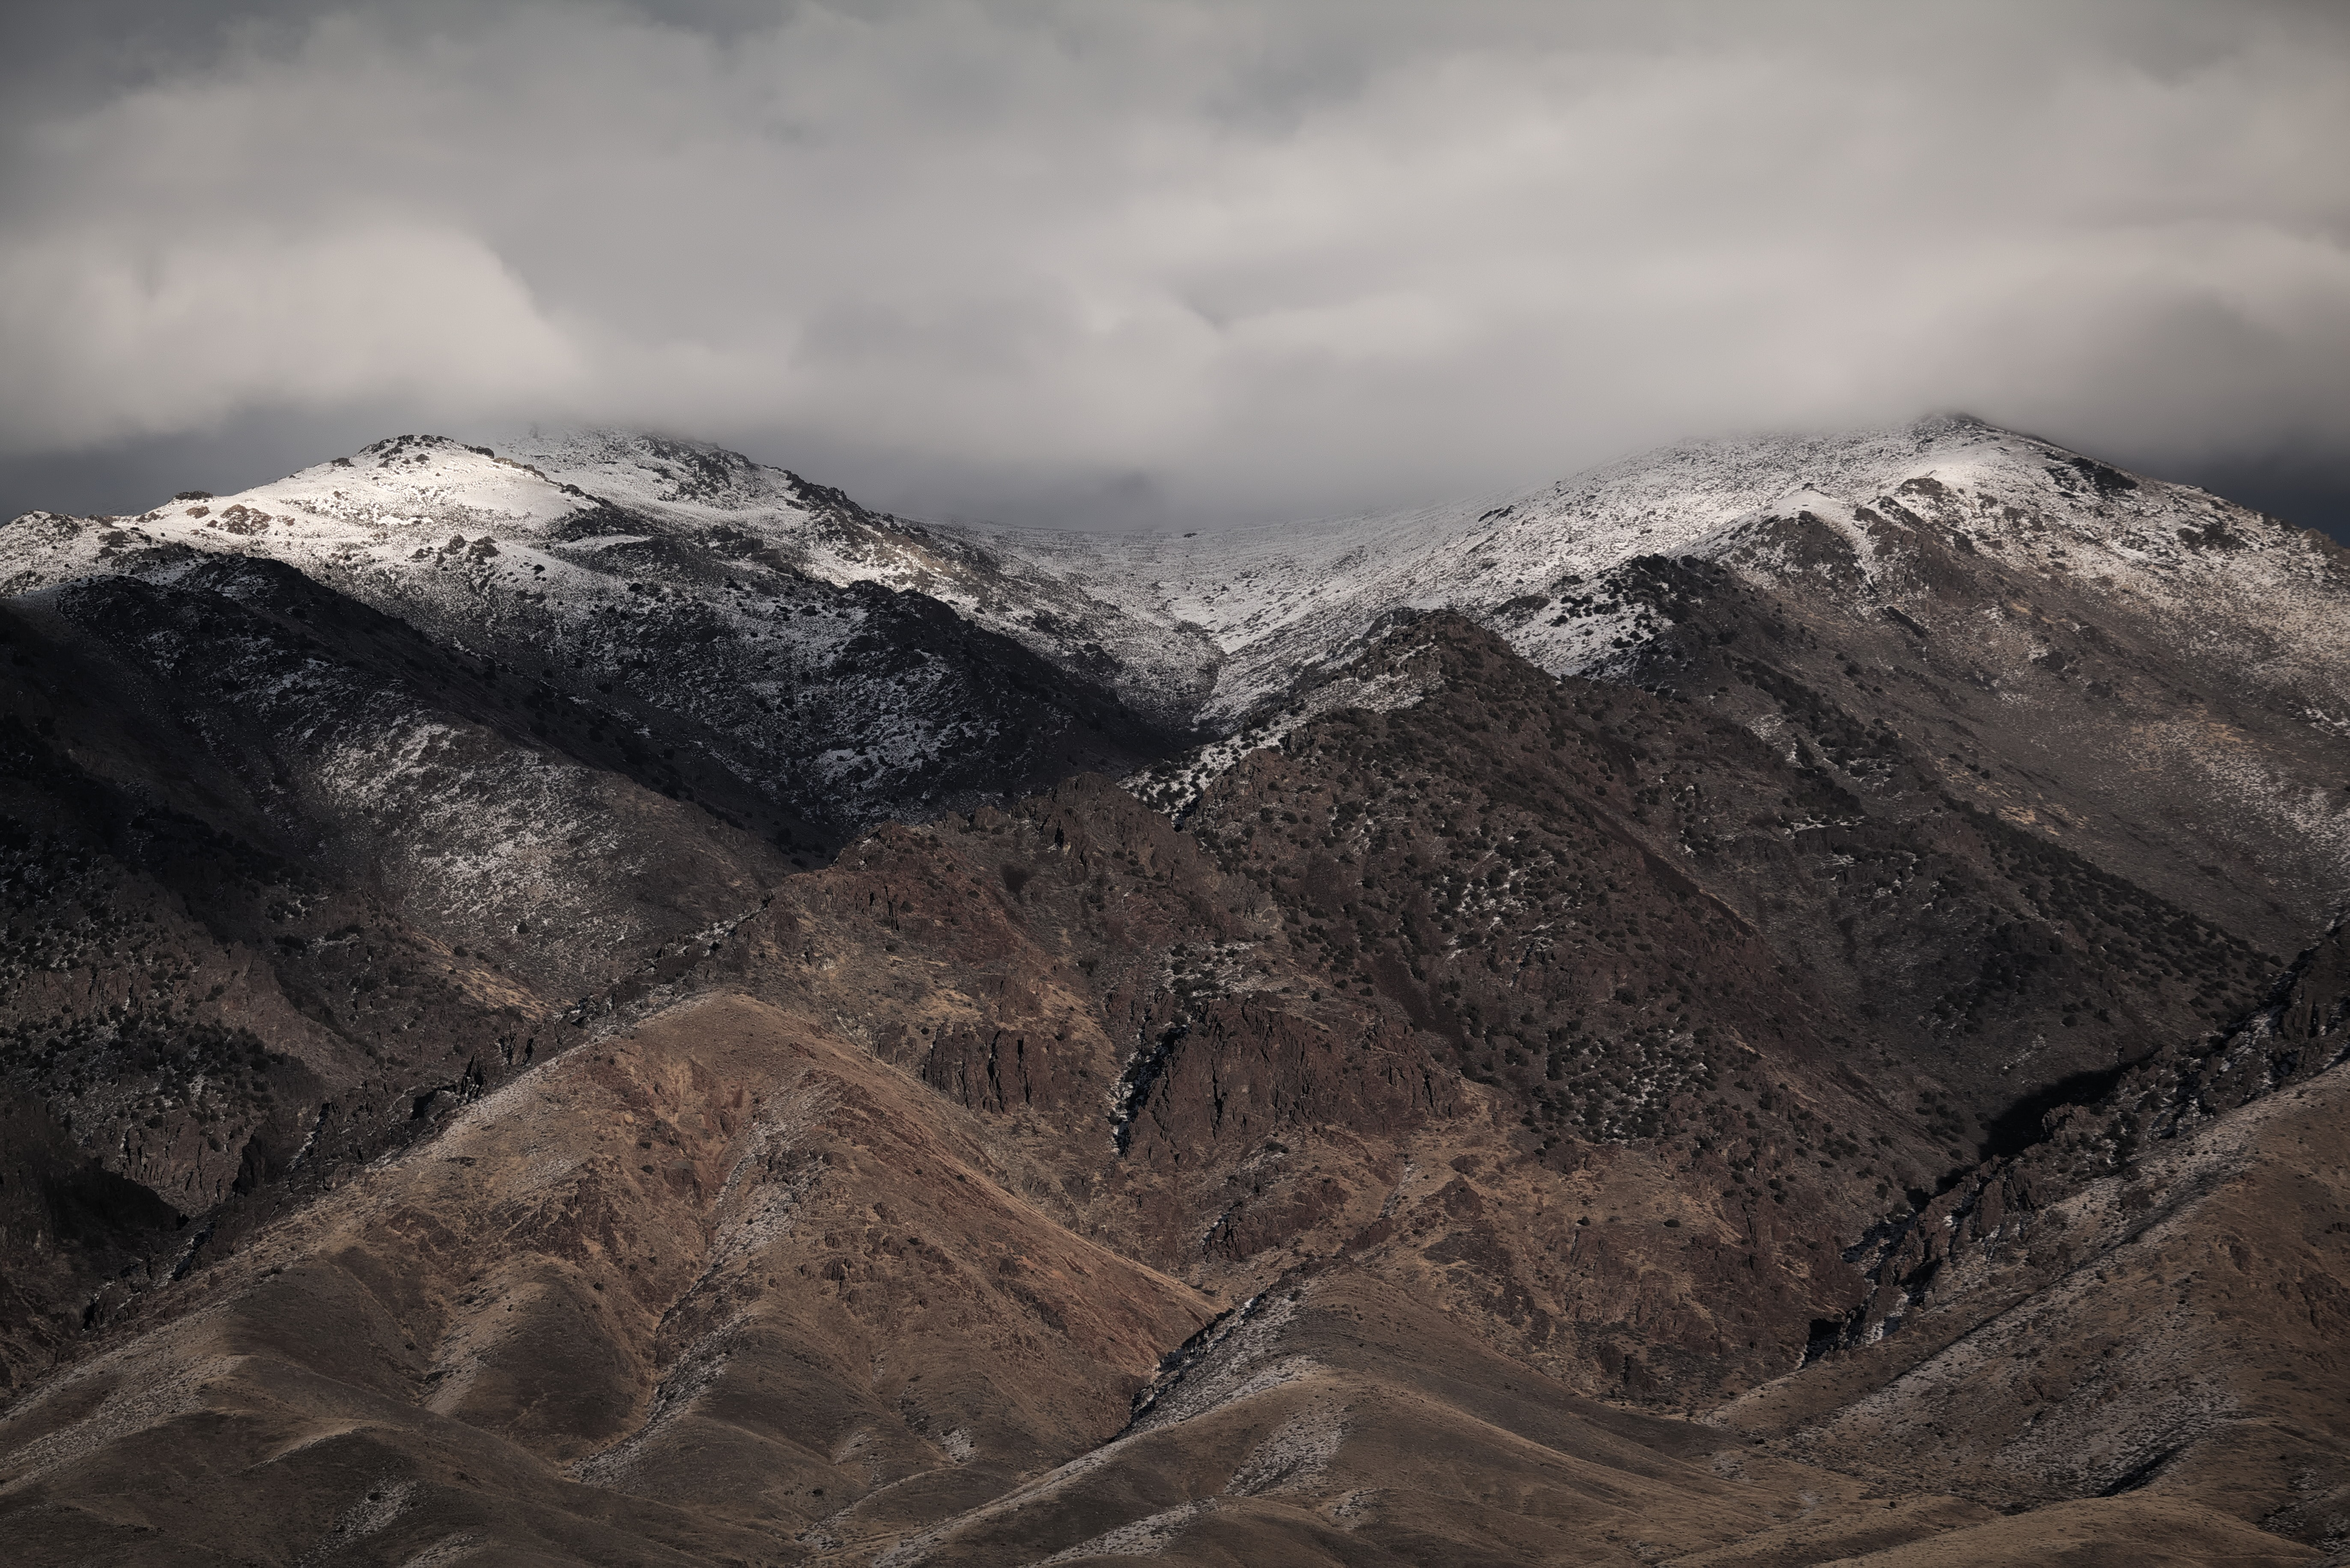 A snowy mountain with a shrub-covered slope in Nevada